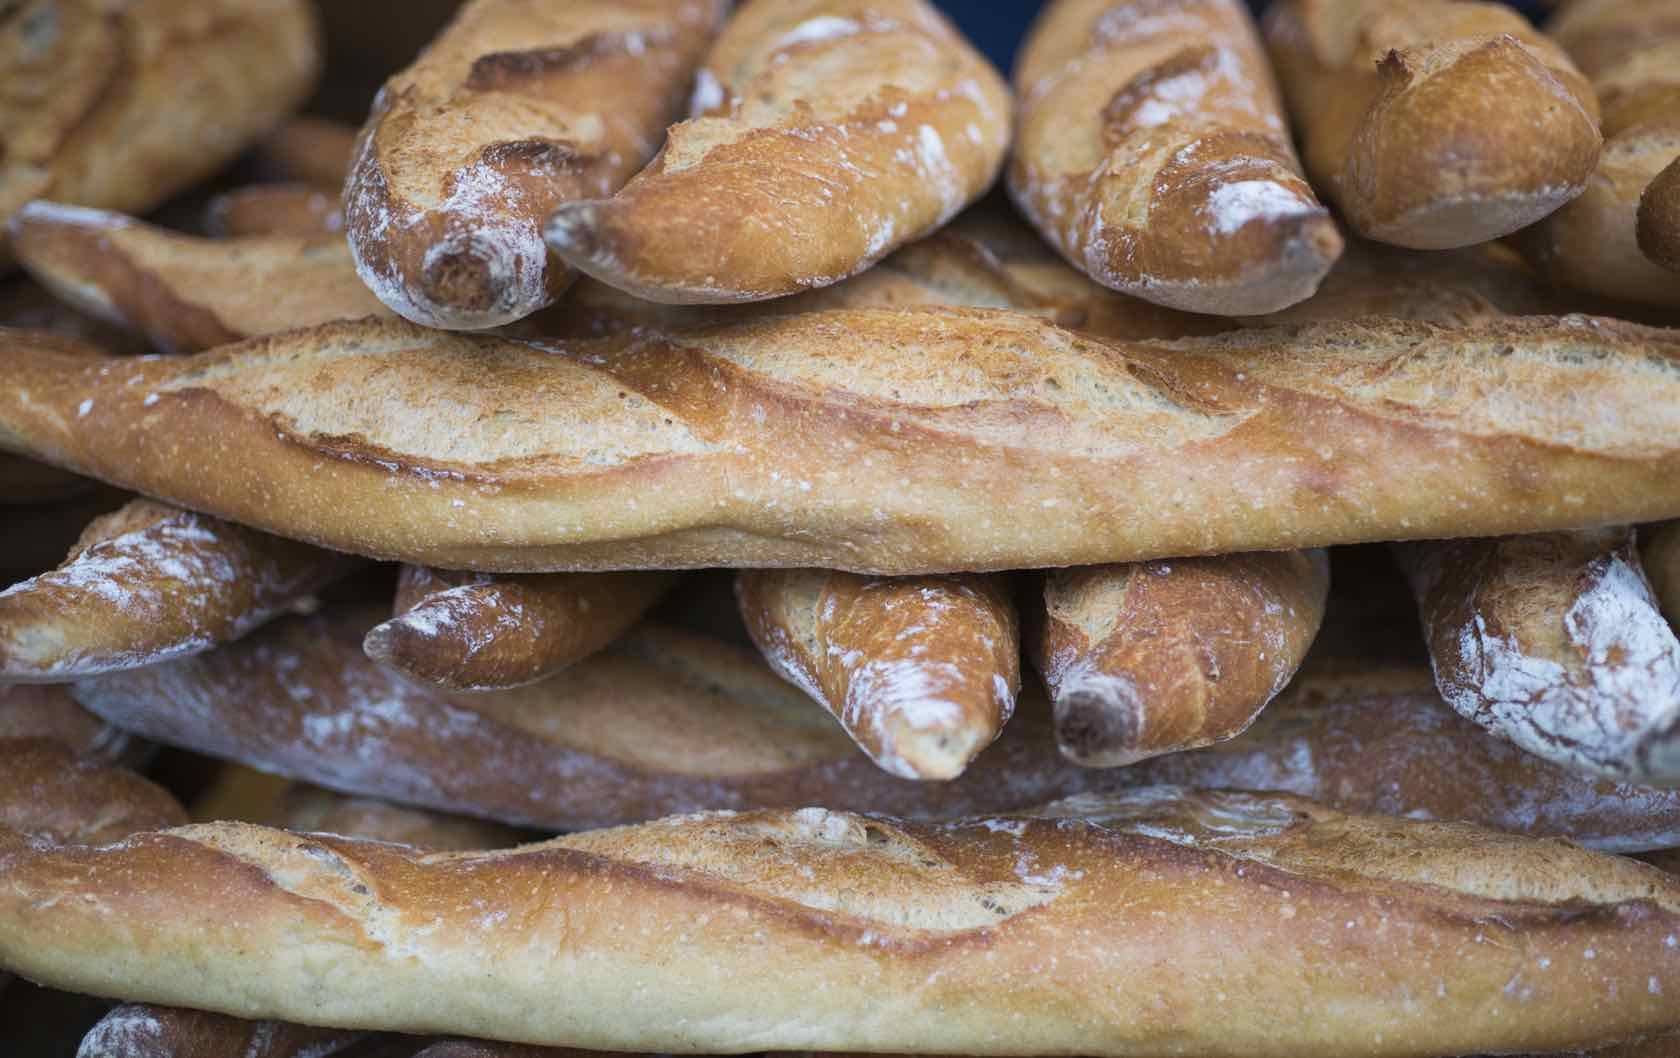 Inside the Boulangerie in Paris: Baguettes & Other Delights